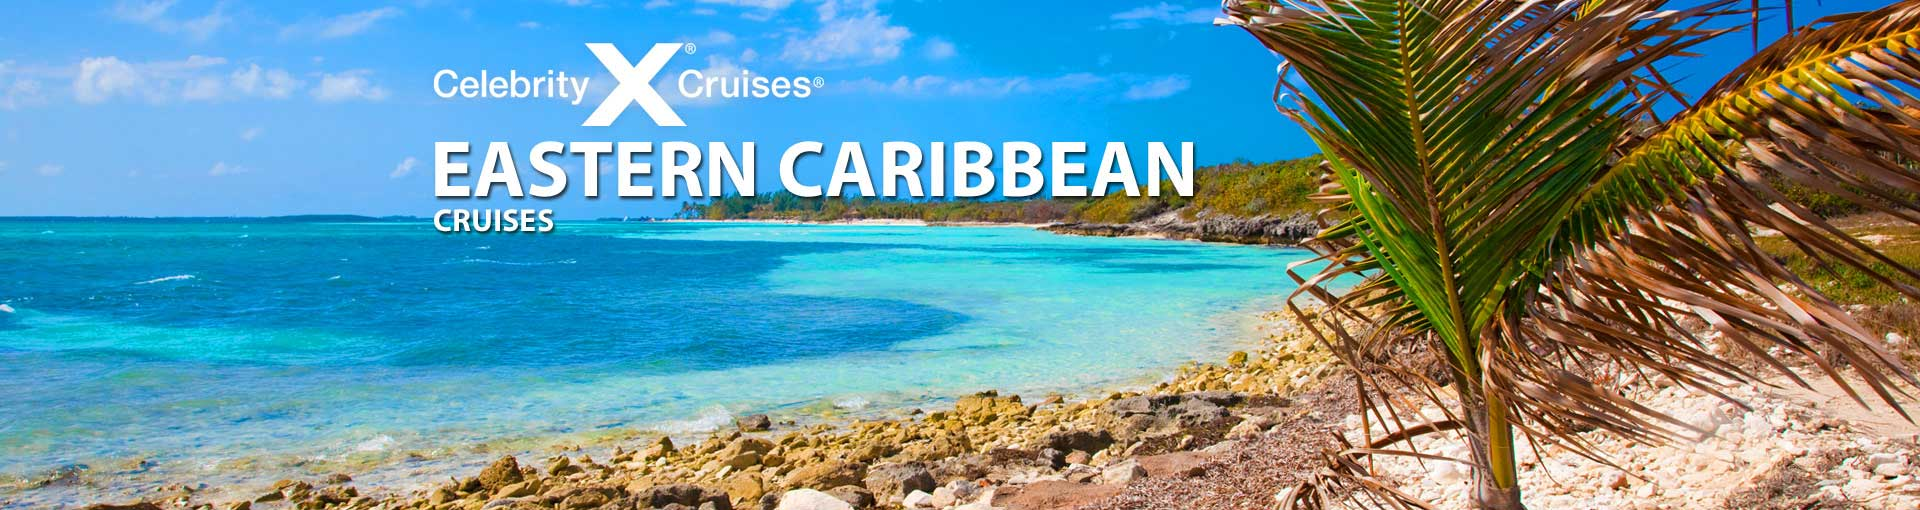 Celebrity Cruises Eastern Caribbean Cruises